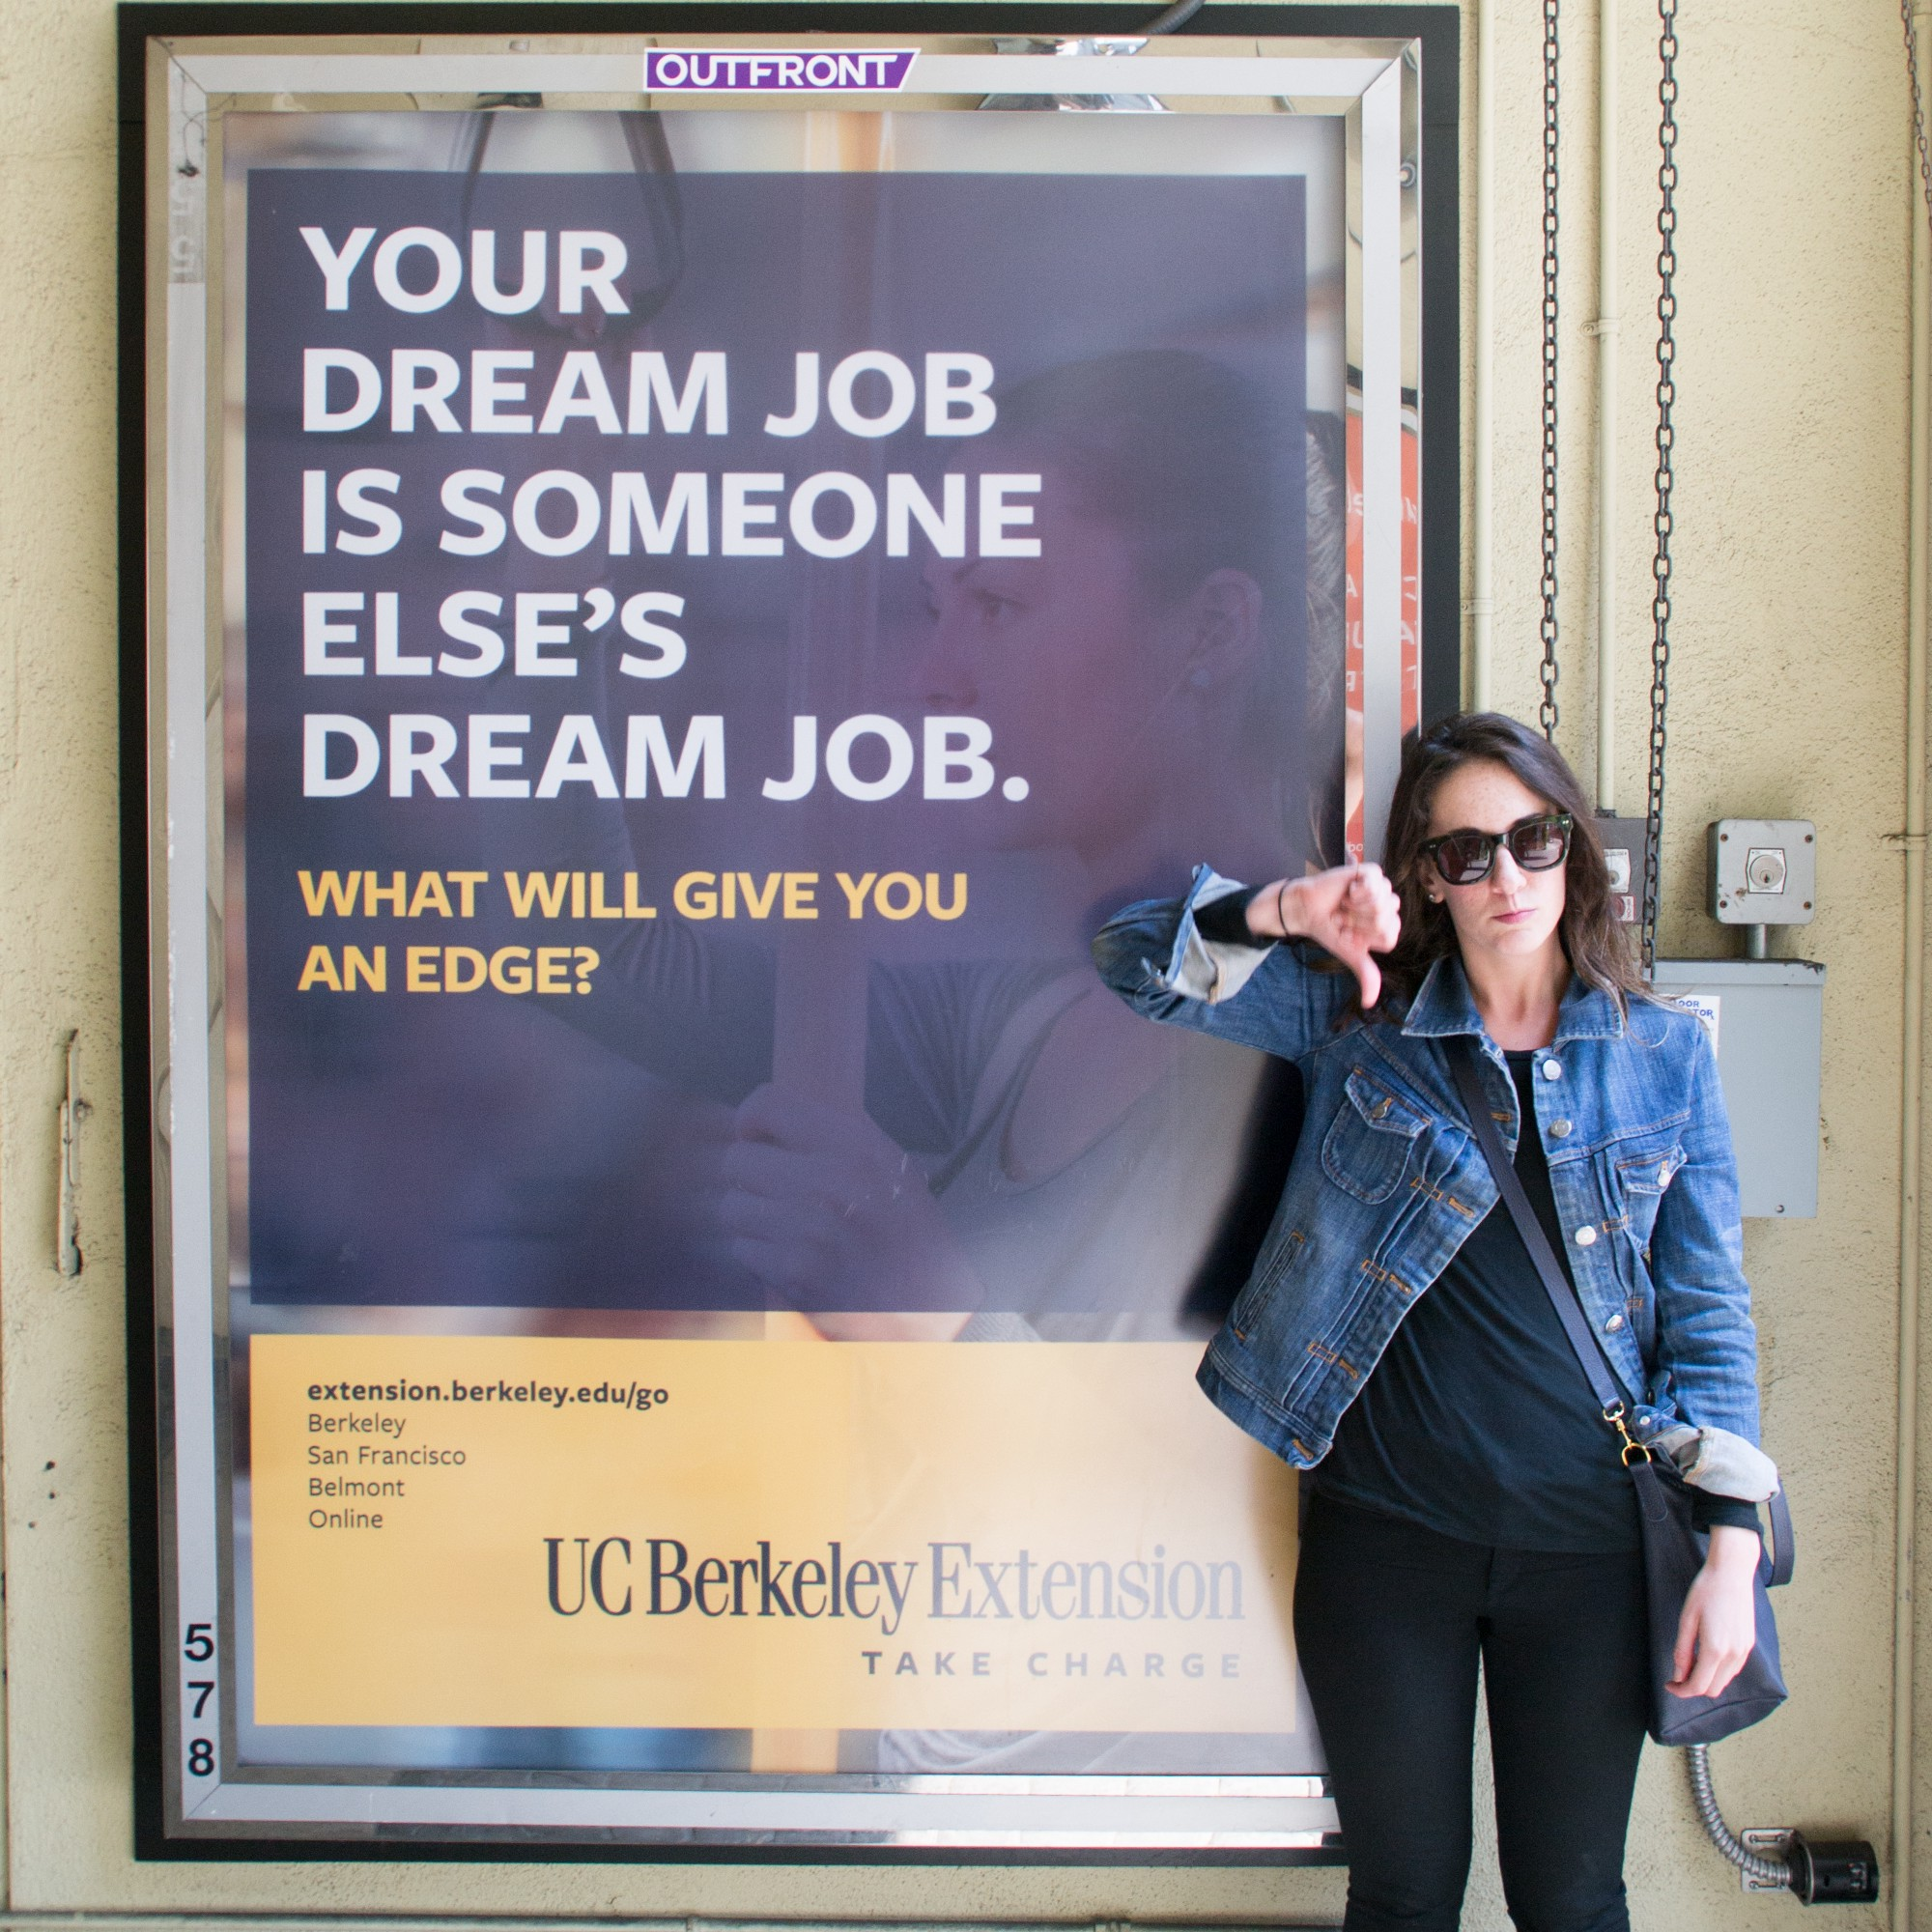 local w gives thumps down to uc berkeley s someone else has local w gives thumps down to uc berkeley s someone else has your dream job advertisement because you make your own dream job